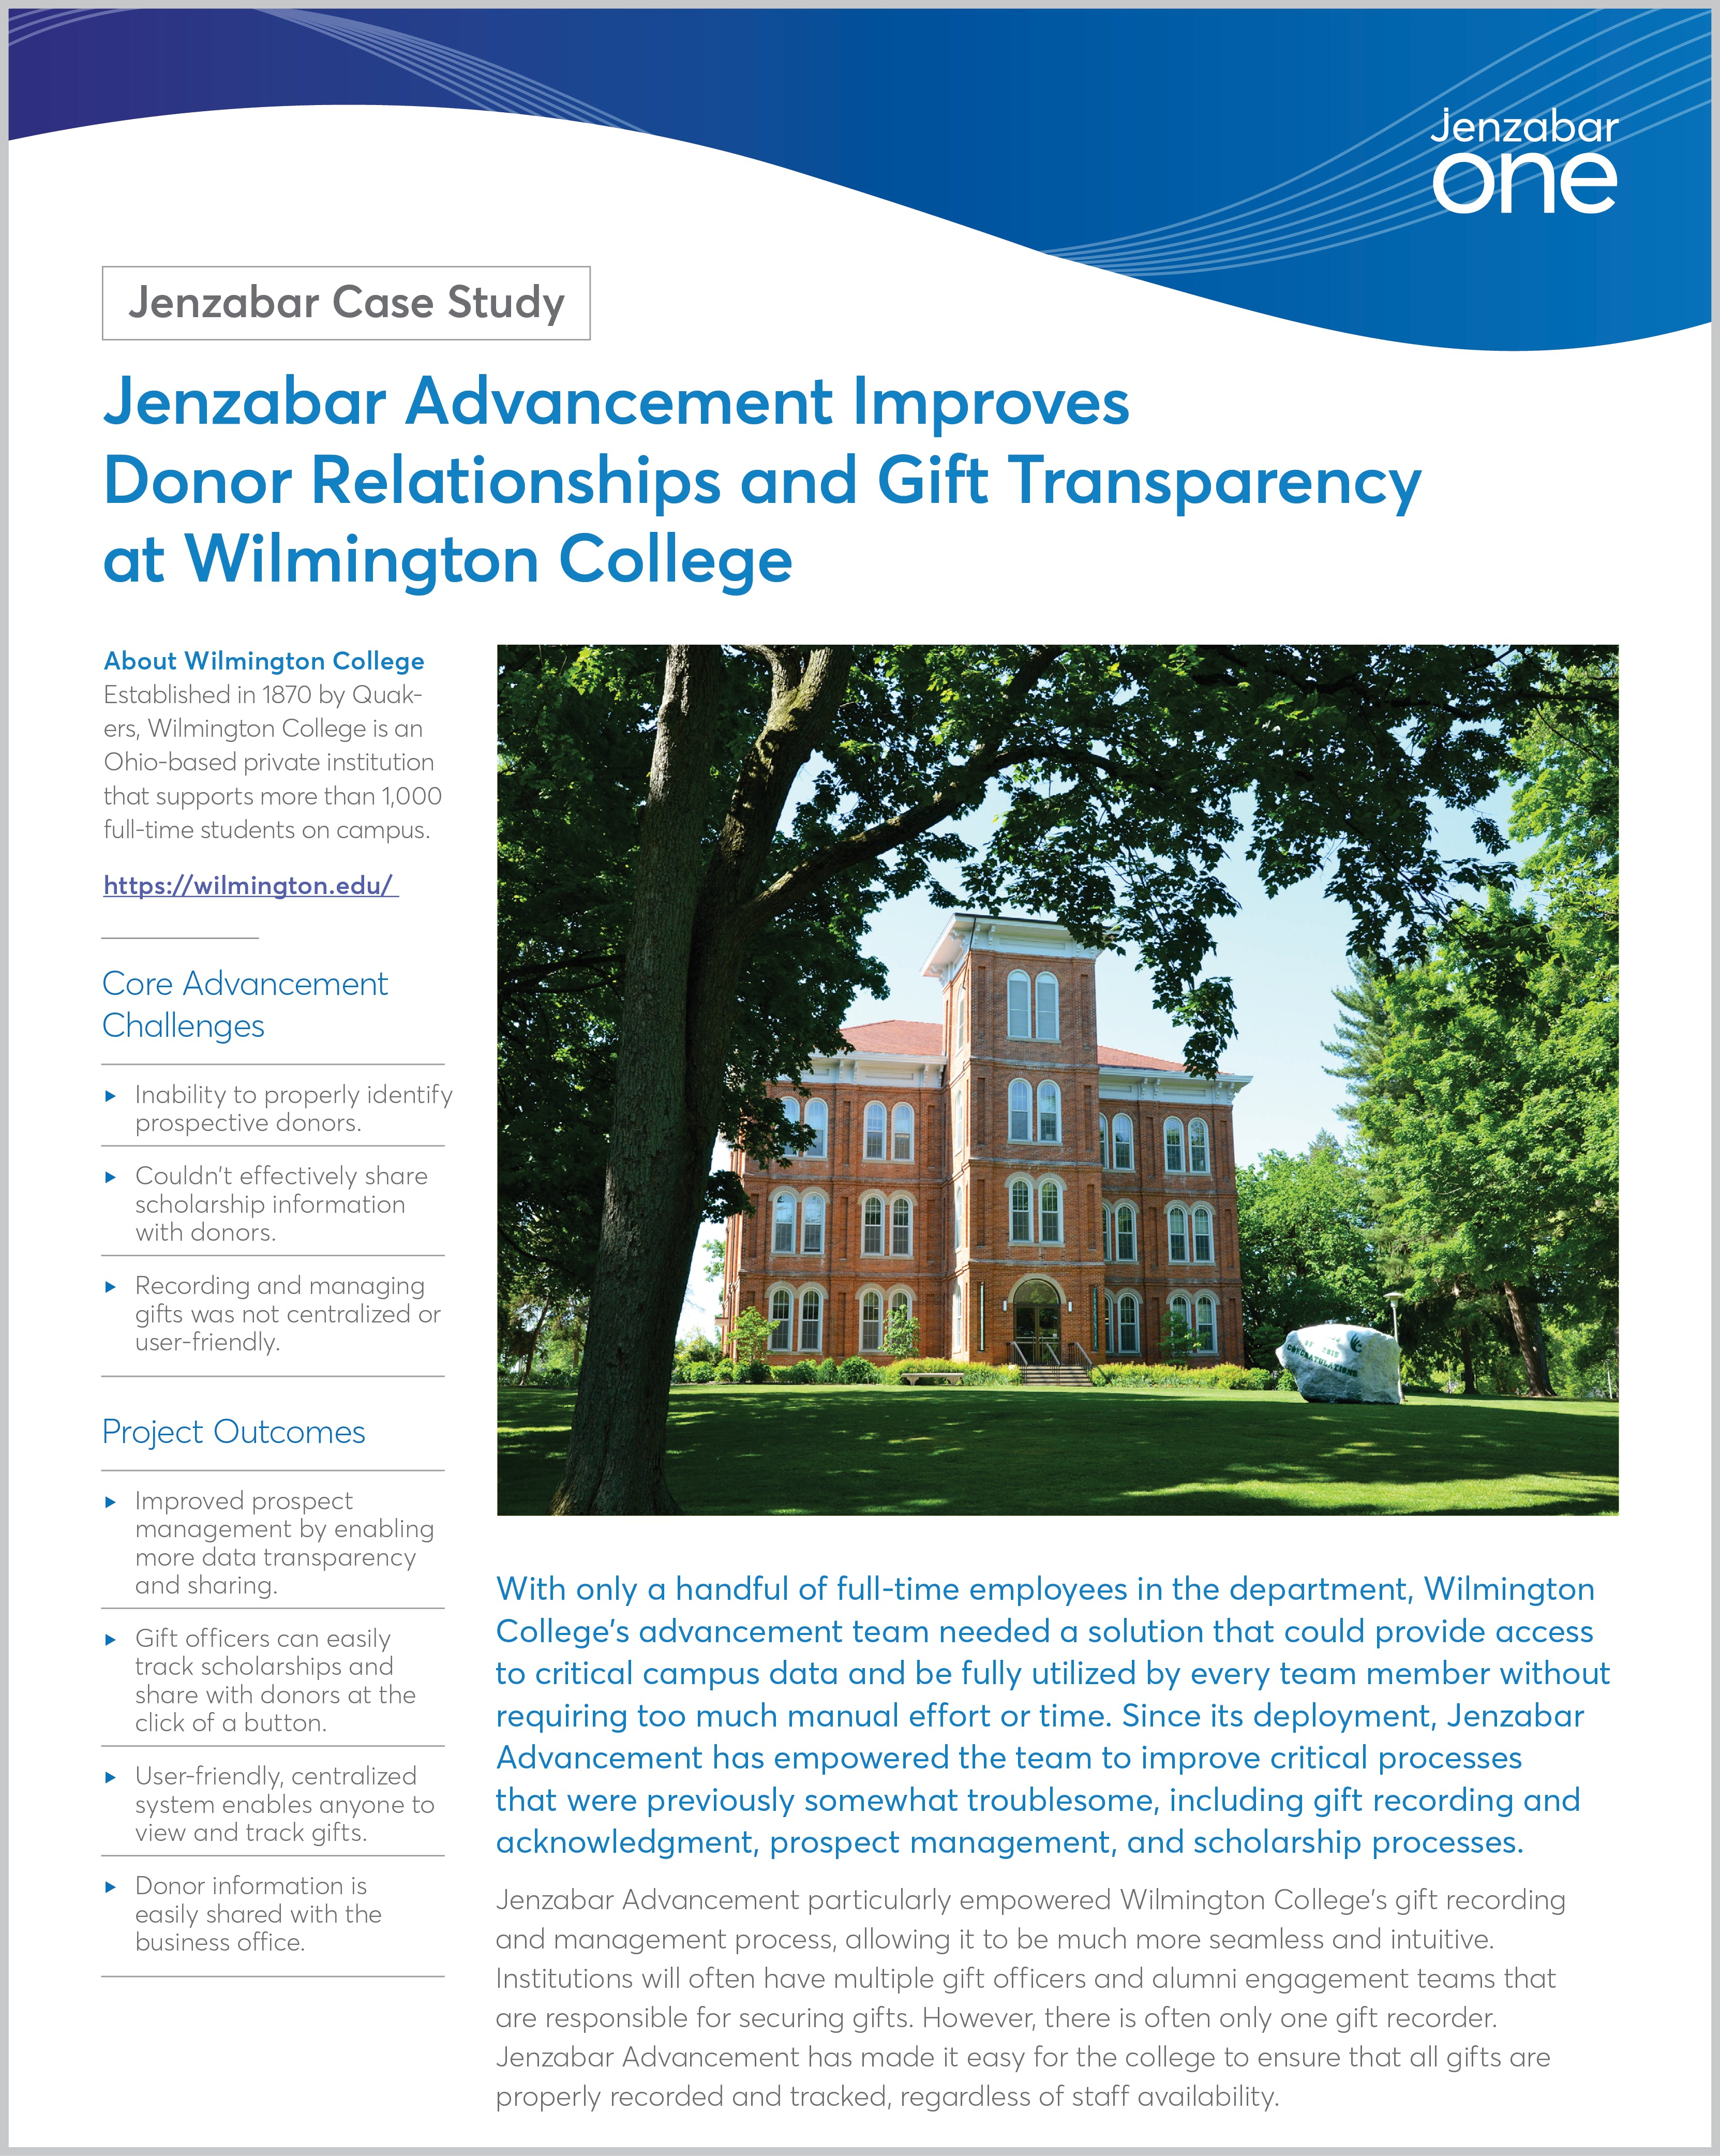 Jenzabar Advancement Improves Donor Relationships and Gift Transparency at Wilmington College